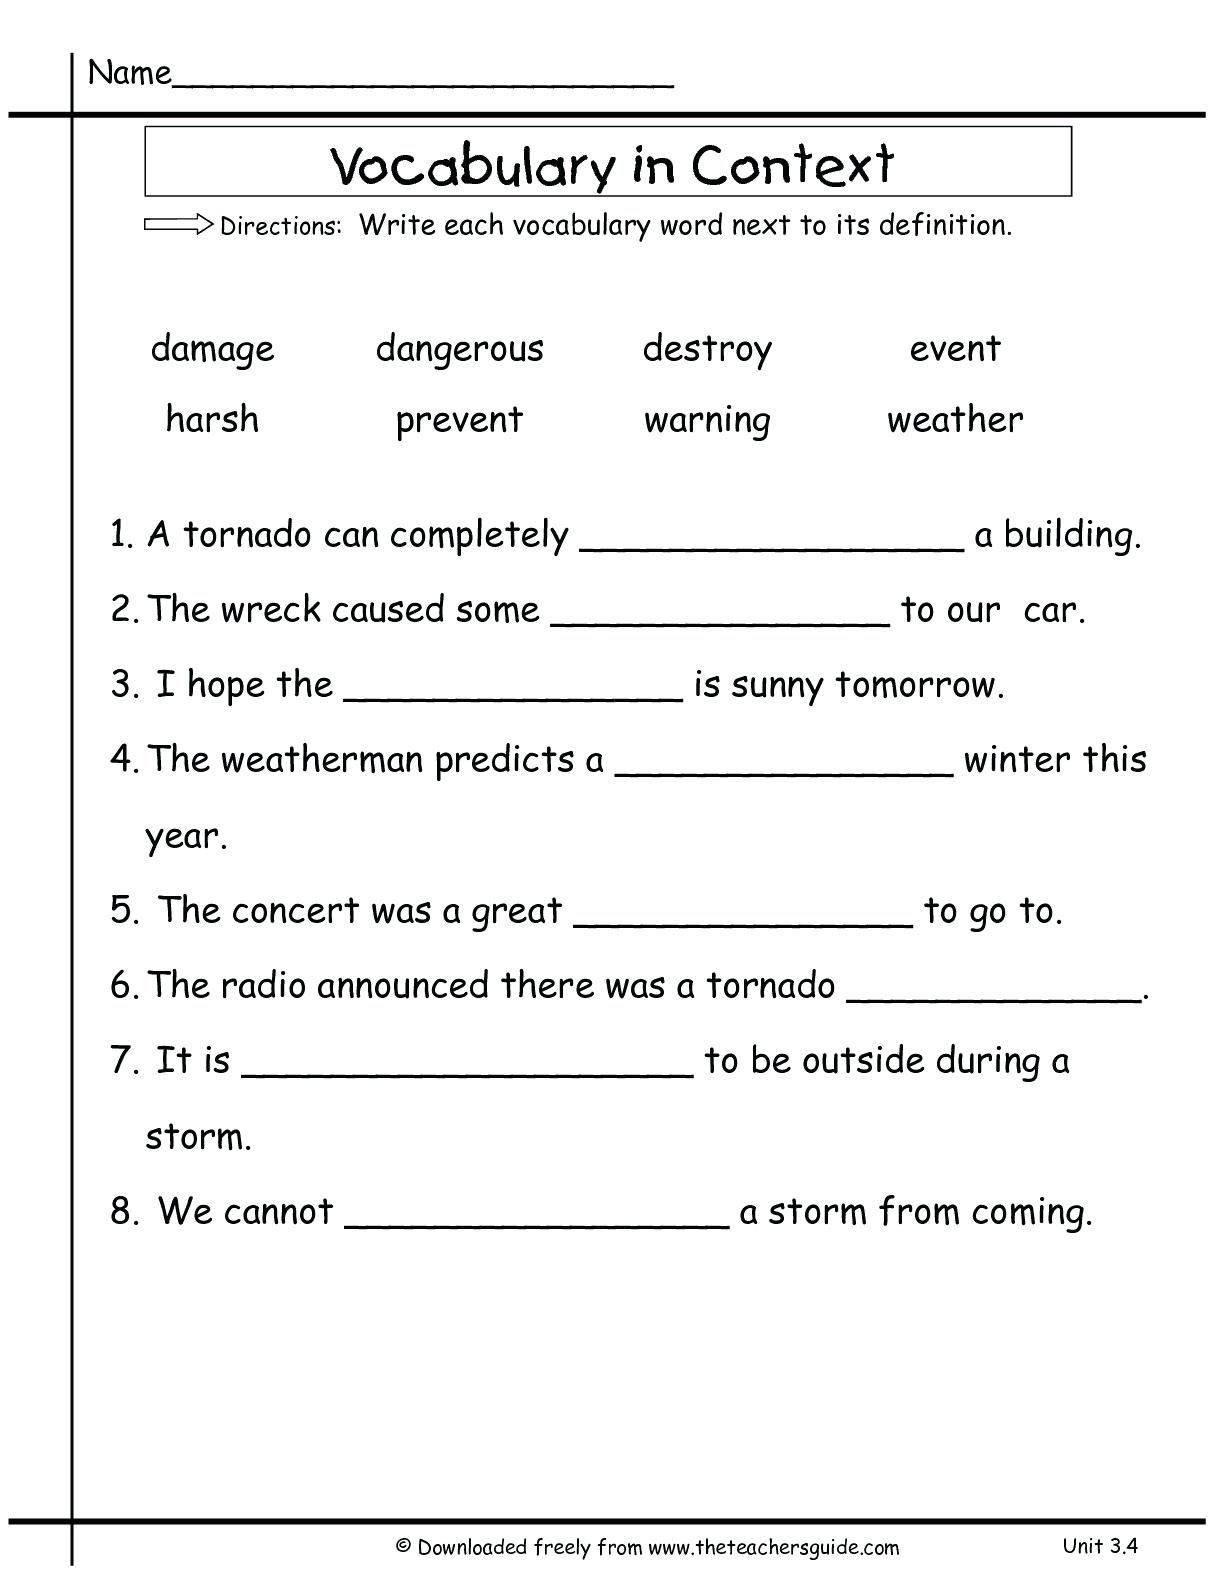 Worksheet Ideas Vocabulary Words Worksheets Image With